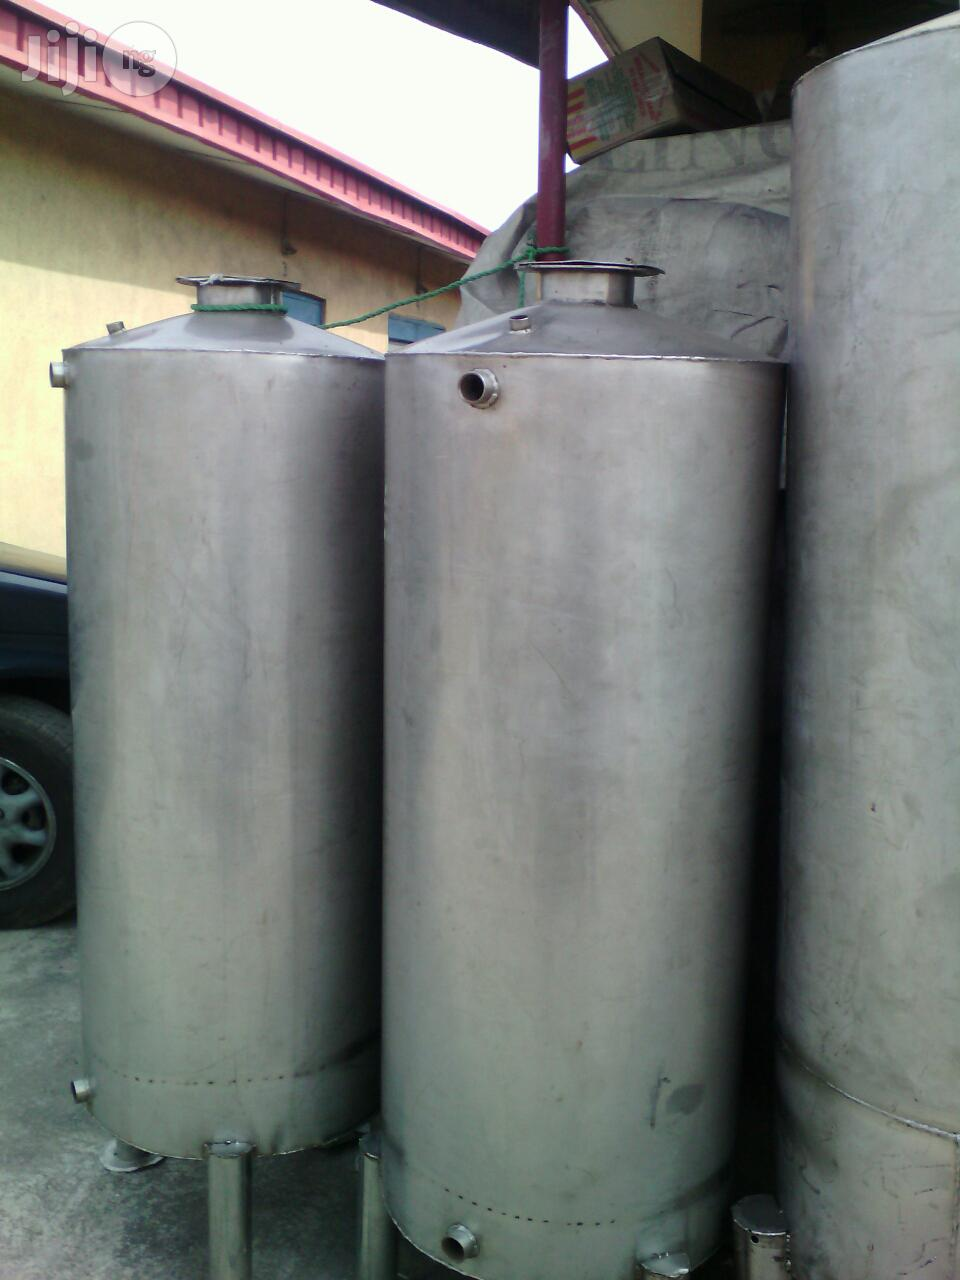 Water Treatment Cylinders And Chemicals